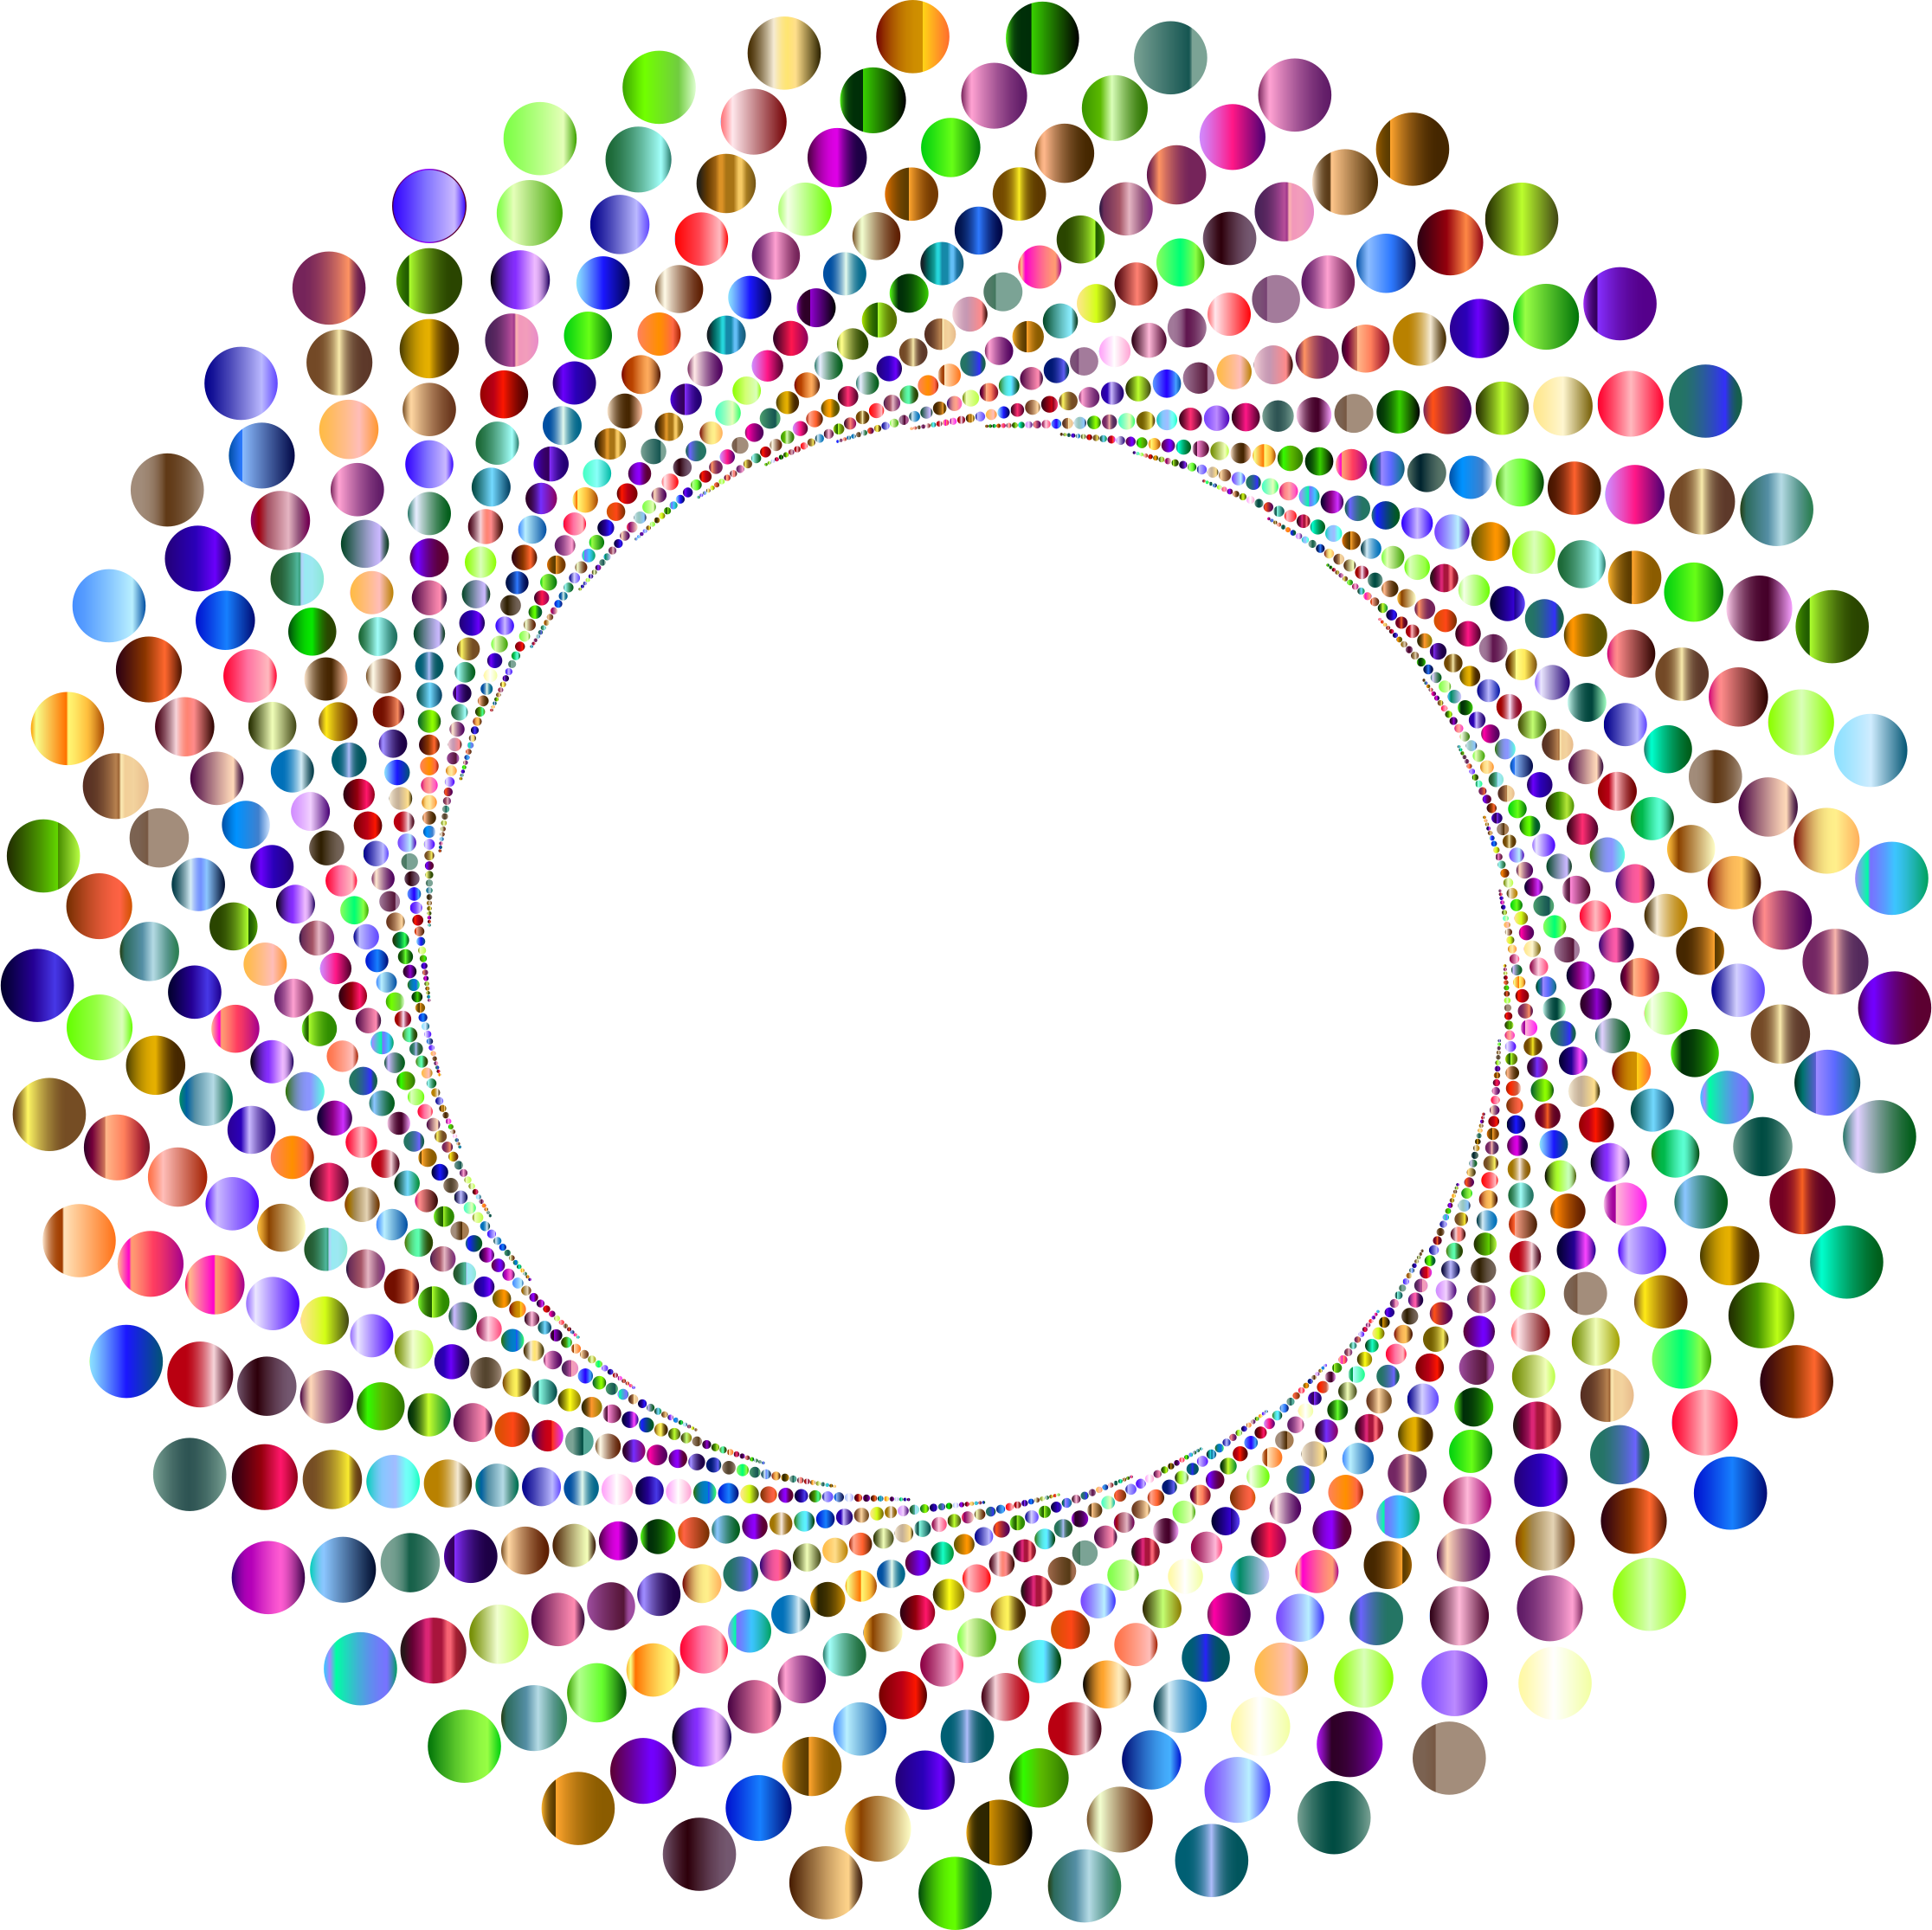 Vortex vector round logo design. Clipart colorful circles shutter